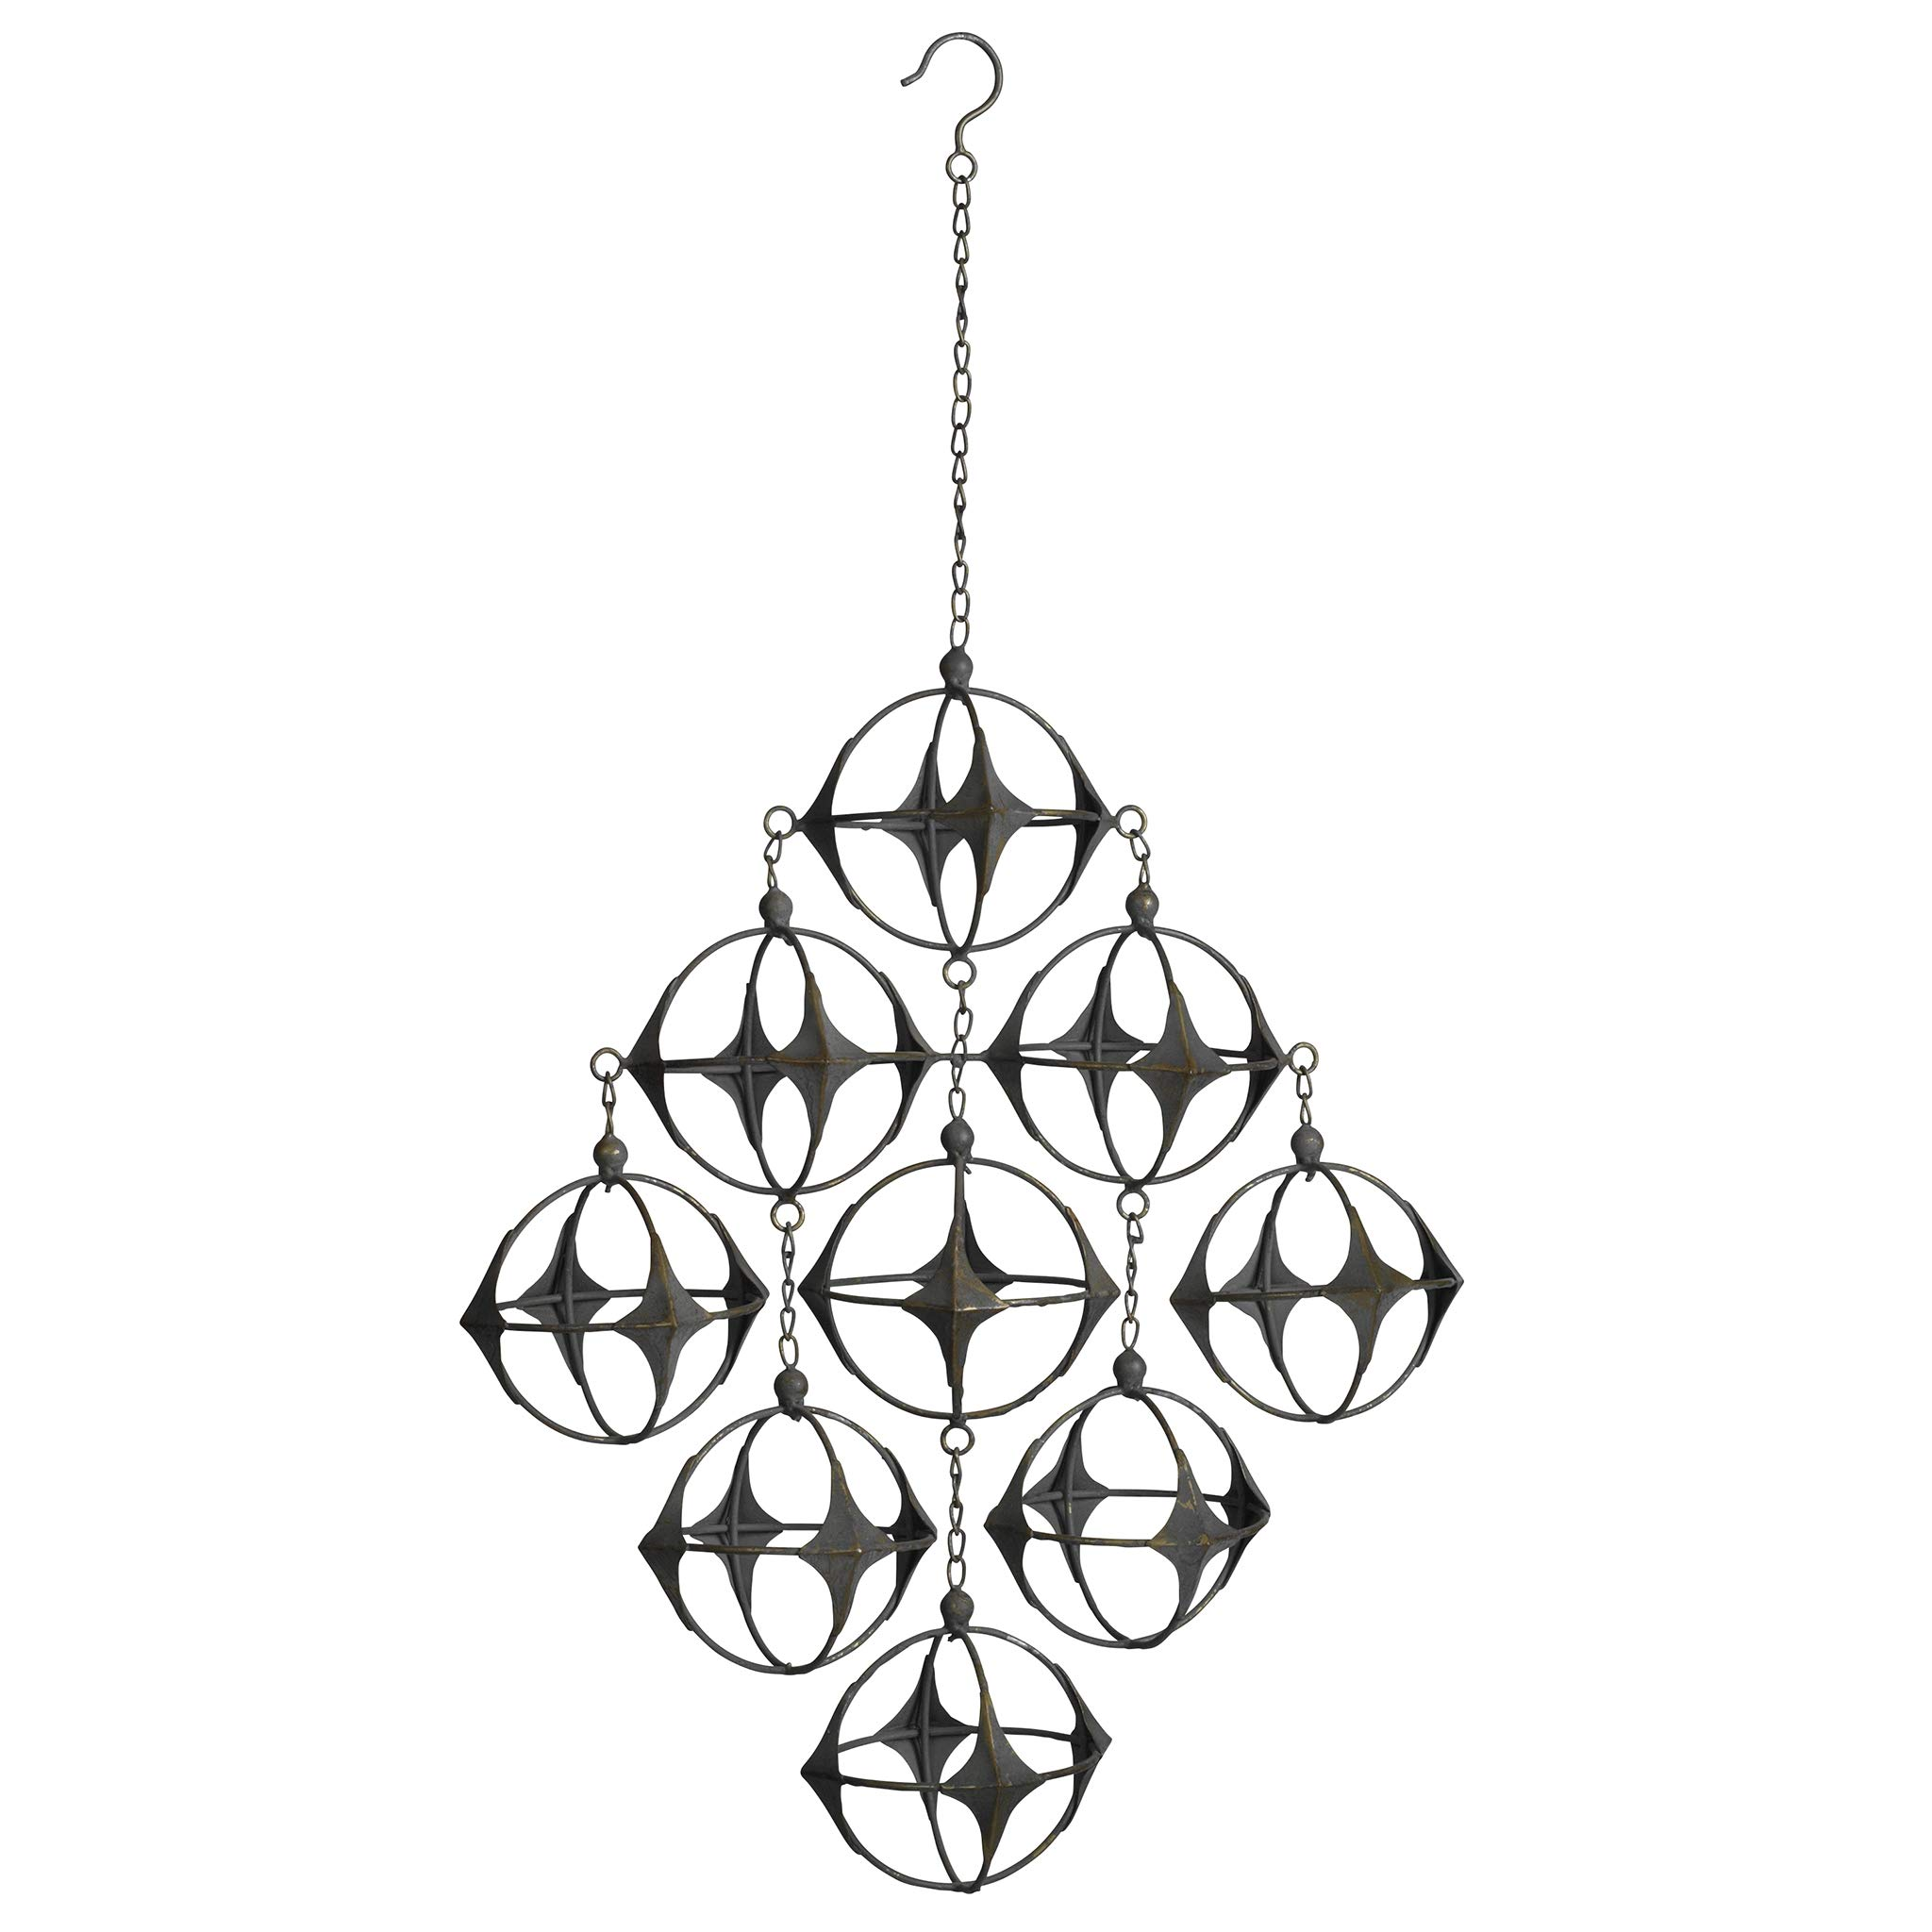 Design Toscano Kinetic Constellation Futuristic Mobile Hanging Sculpture, 6 Inches, Antique Bronze by Design Toscano